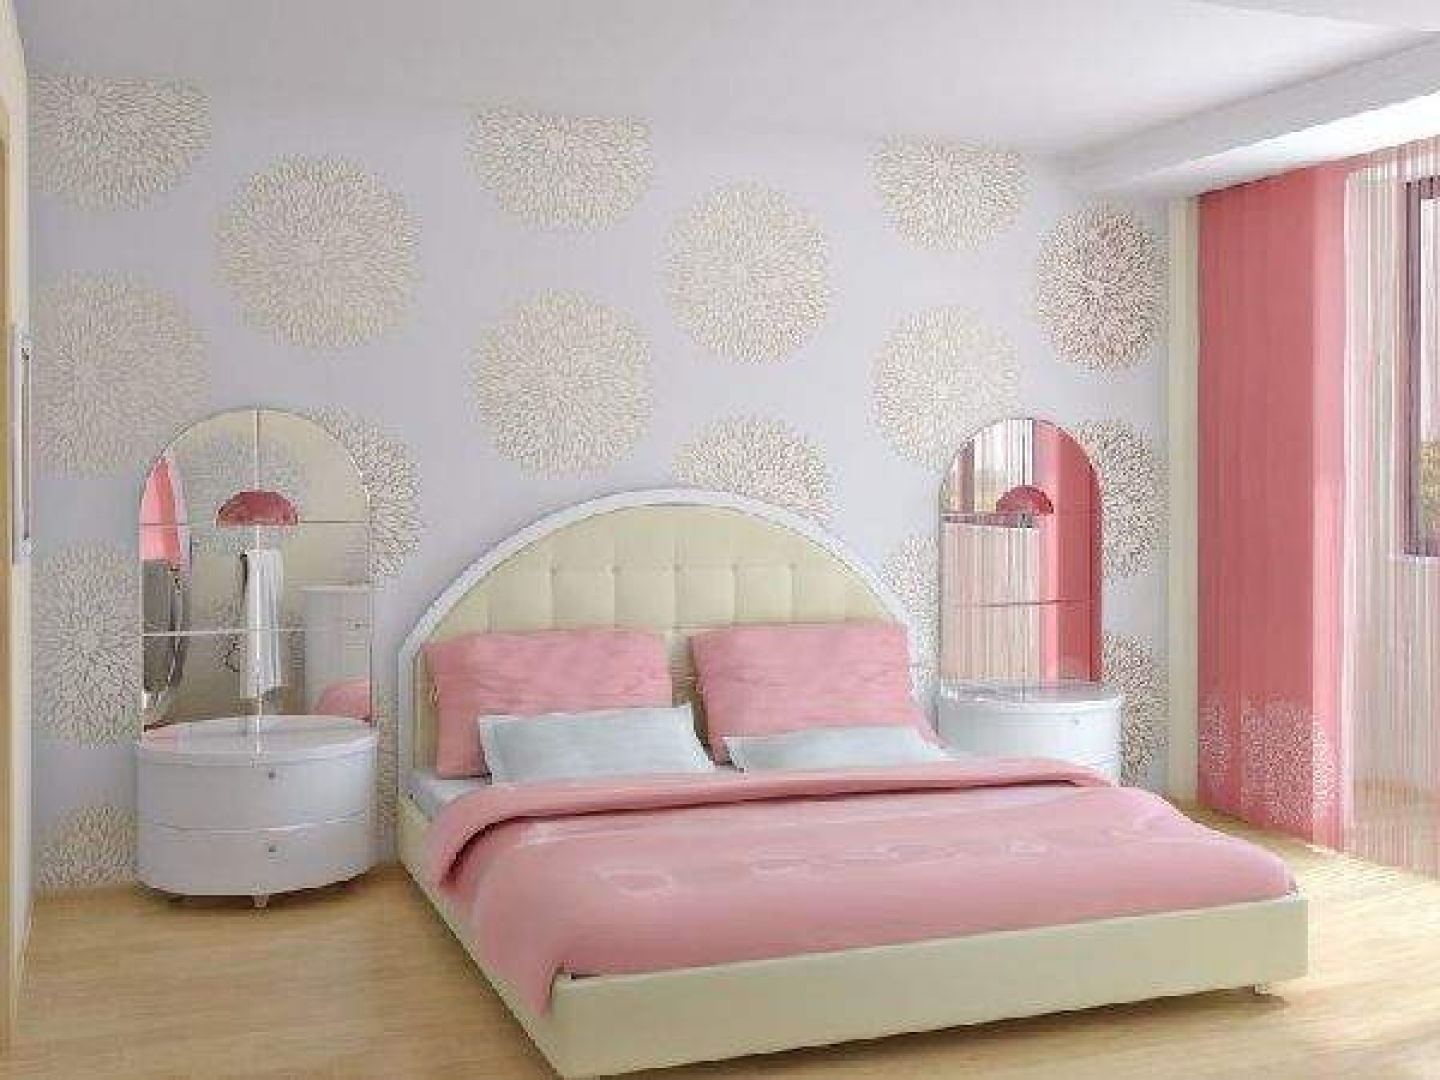 tags apartment apartment interior bed bedroom bedroom wall bedroom - Cool Wallpaper Designs For Bedroom